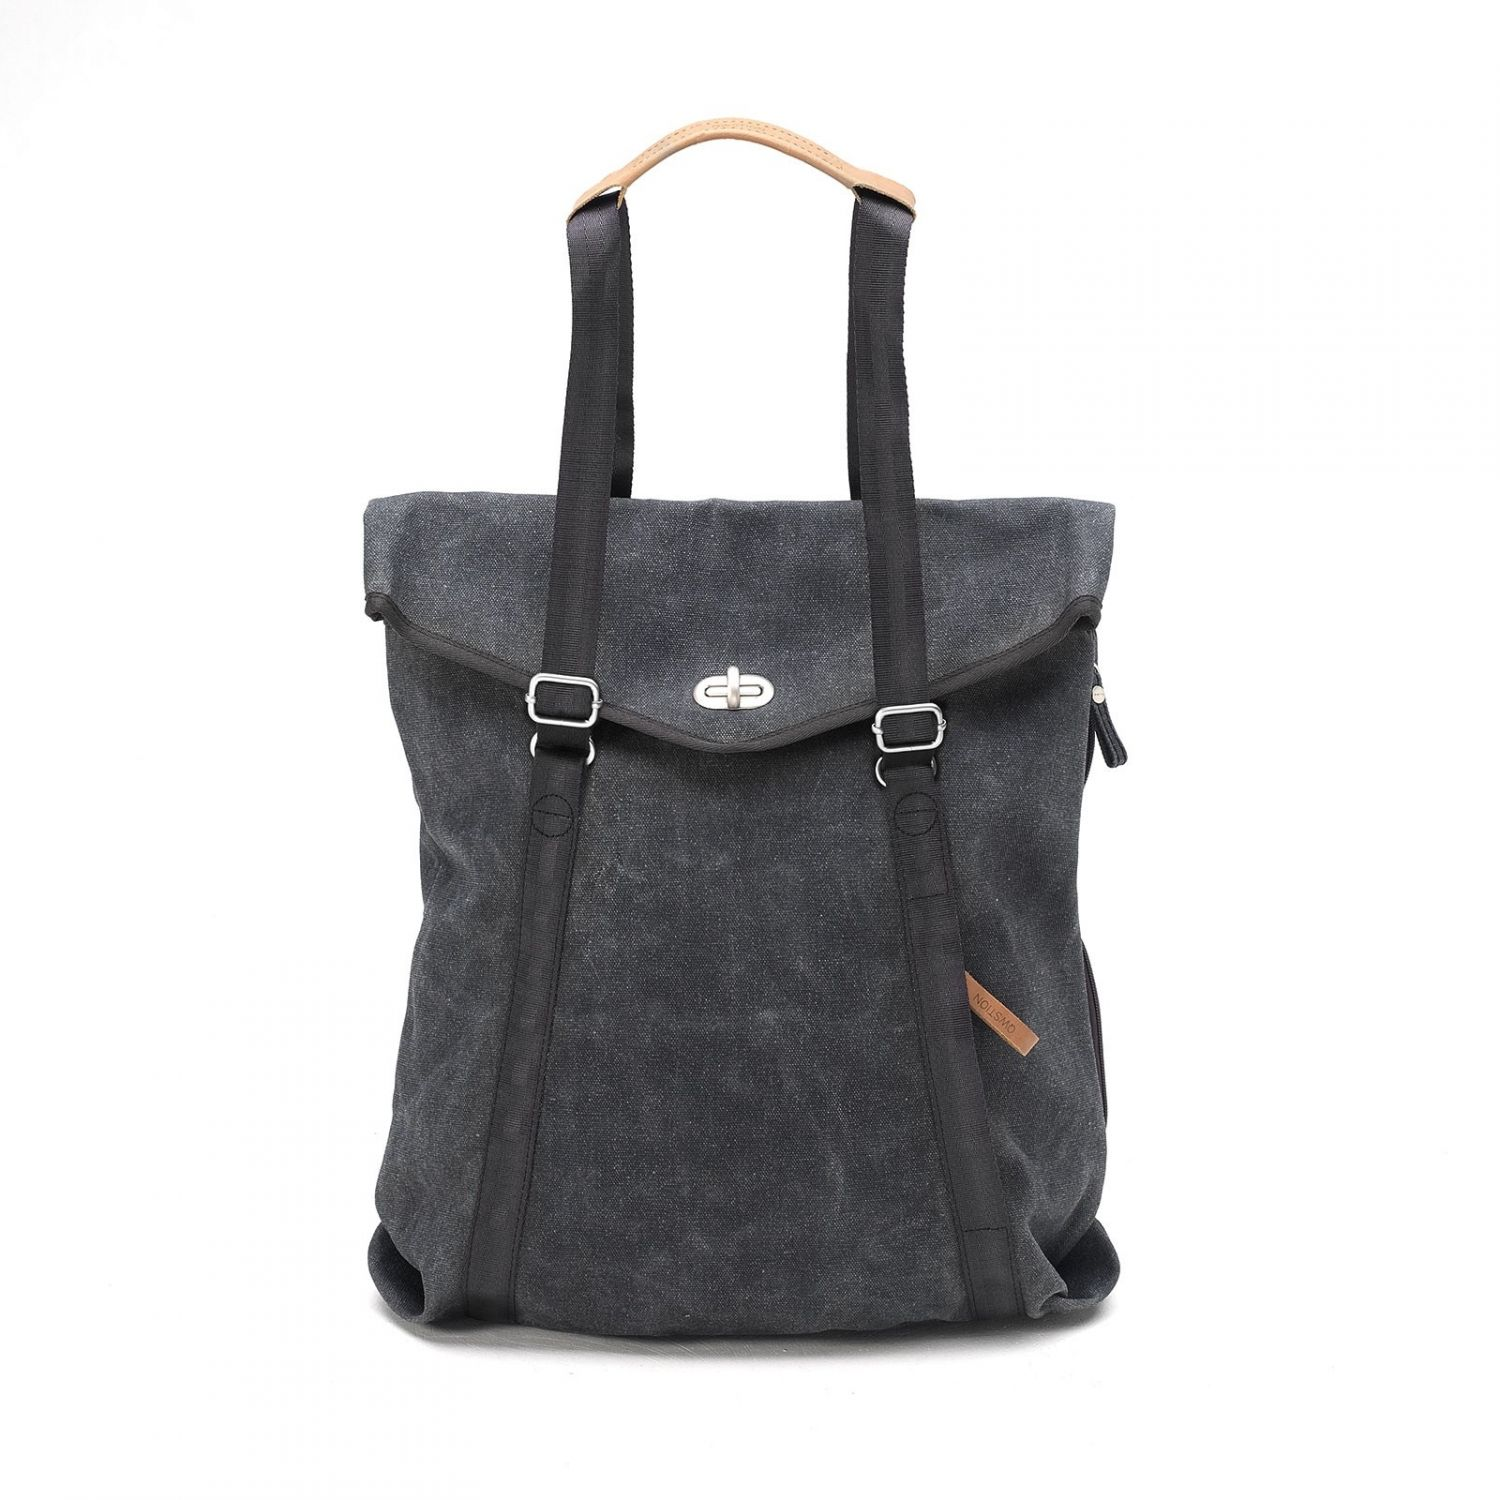 Qwstion Tasche Tote Washed Black gesehen @ www.sailerstyle.com